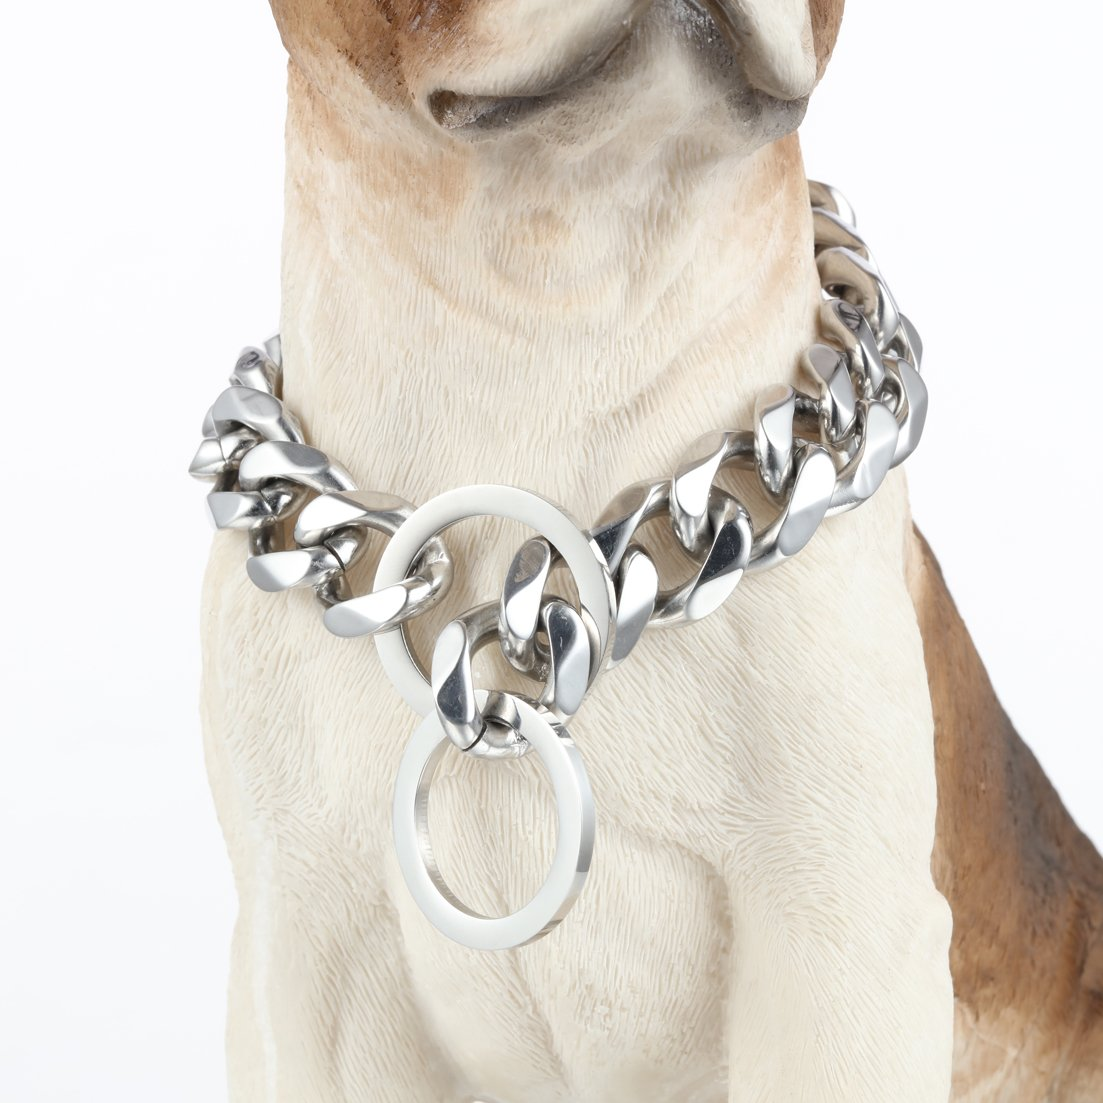 GZMZC 10/12/15/17/19mm Strong 316L Stainless Steel Curb Cuban Link Chain Dog Choker Collar 12-36inch(26inches,19mm) by GZMZC